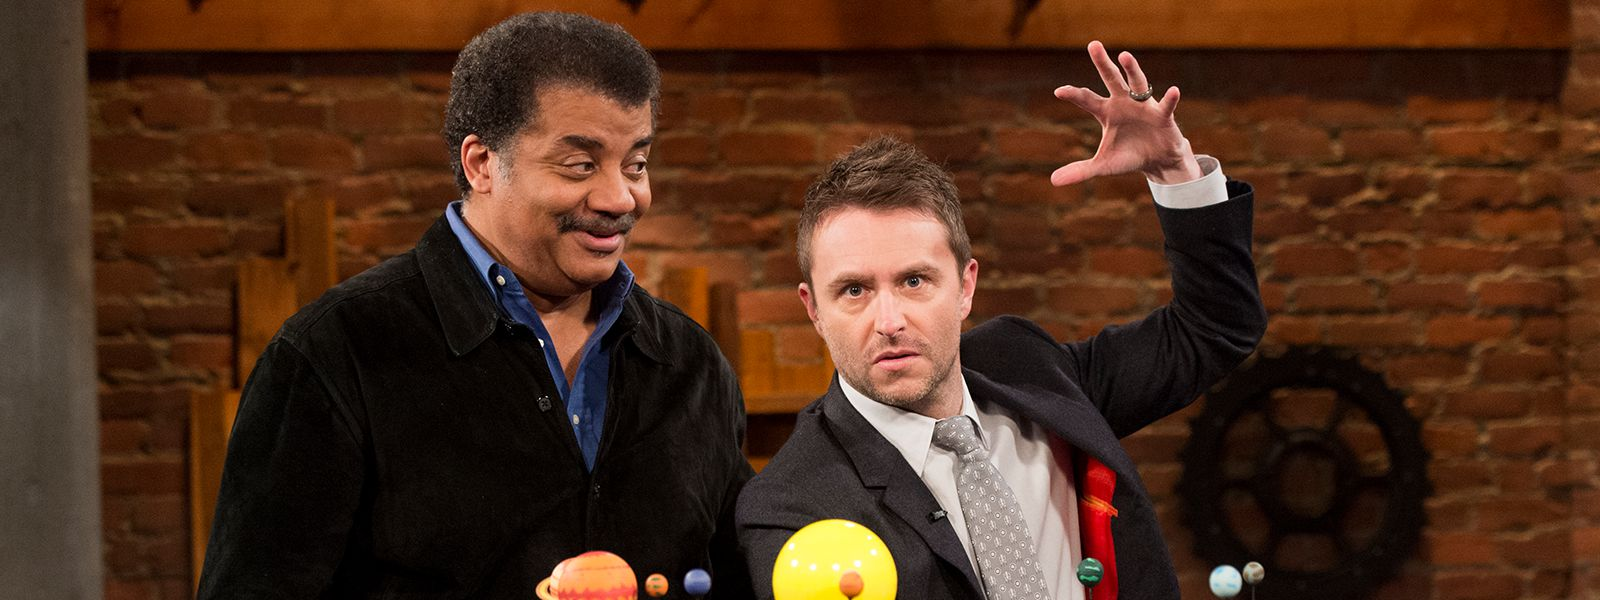 talking-with-chris-hardwick-episode-113-neil-degrasse-tyson-chris-hardwick-800×600